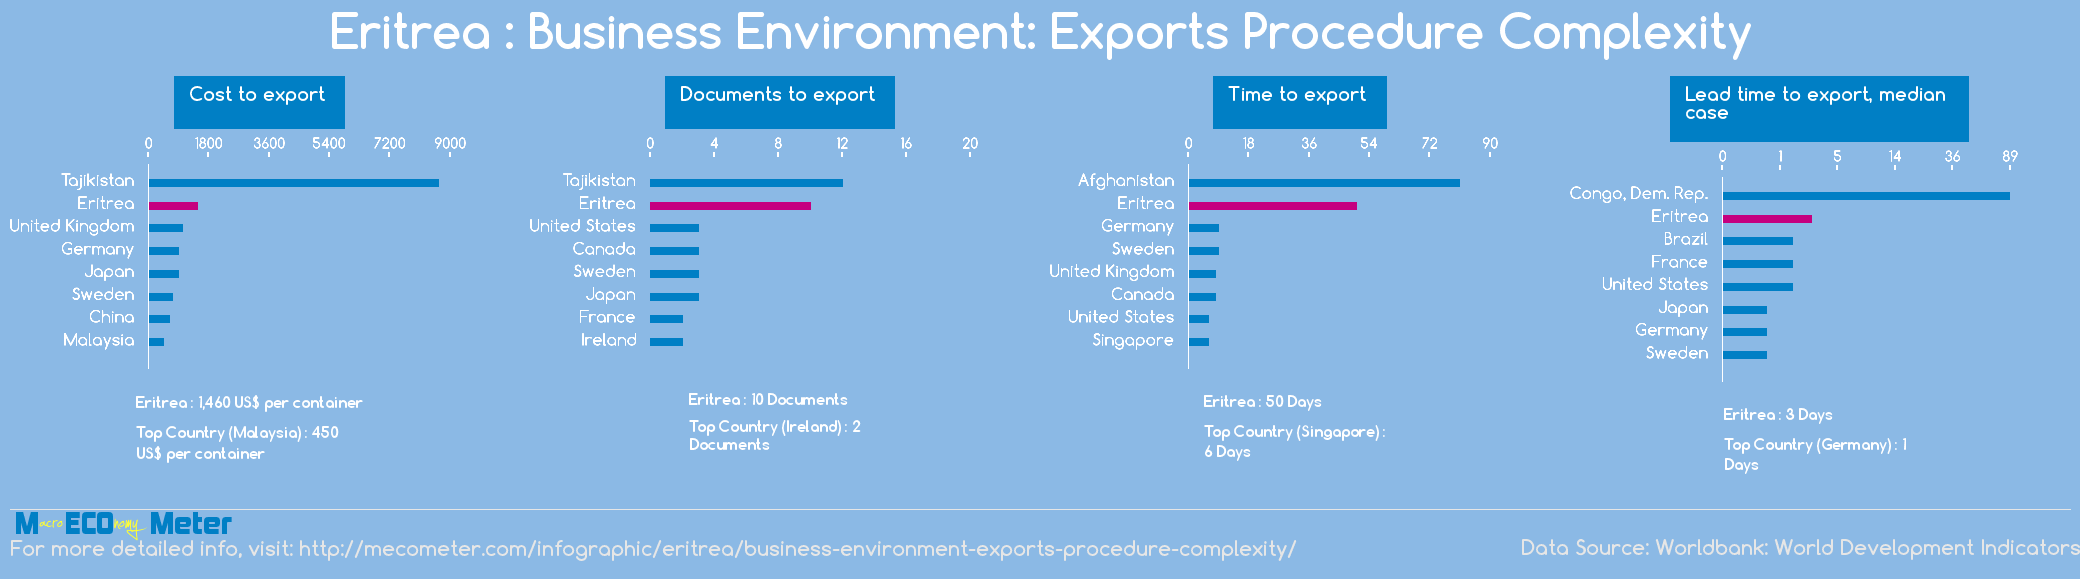 Eritrea : Business Environment: Exports Procedure Complexity